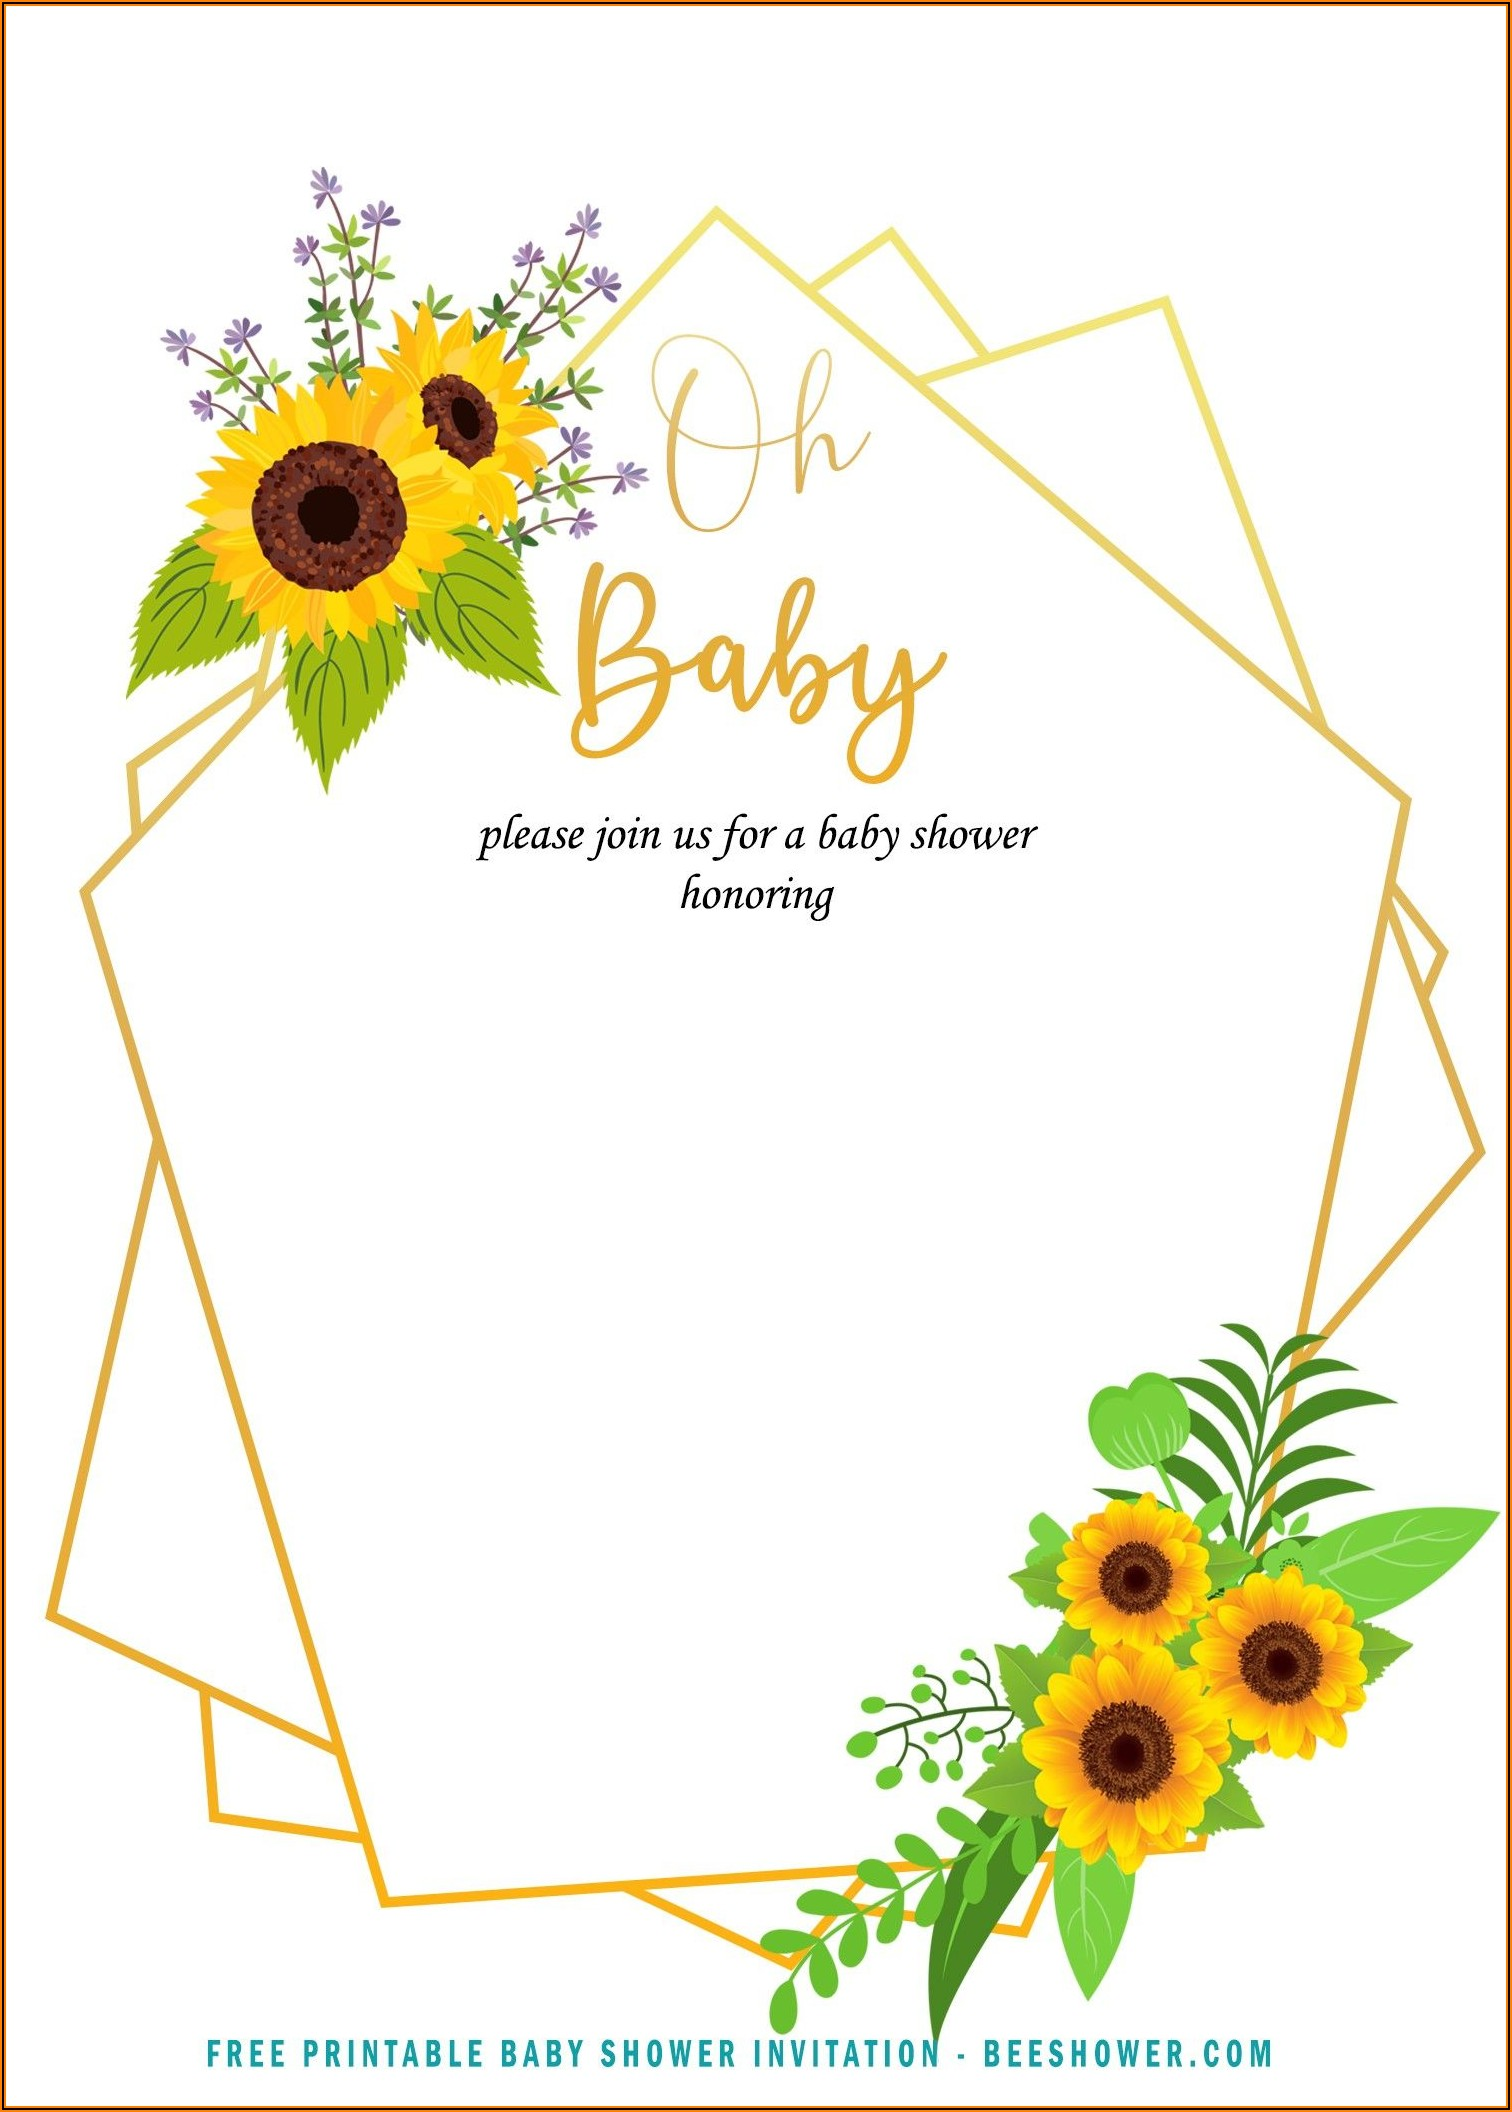 Free Online Baby Shower Invitation Template